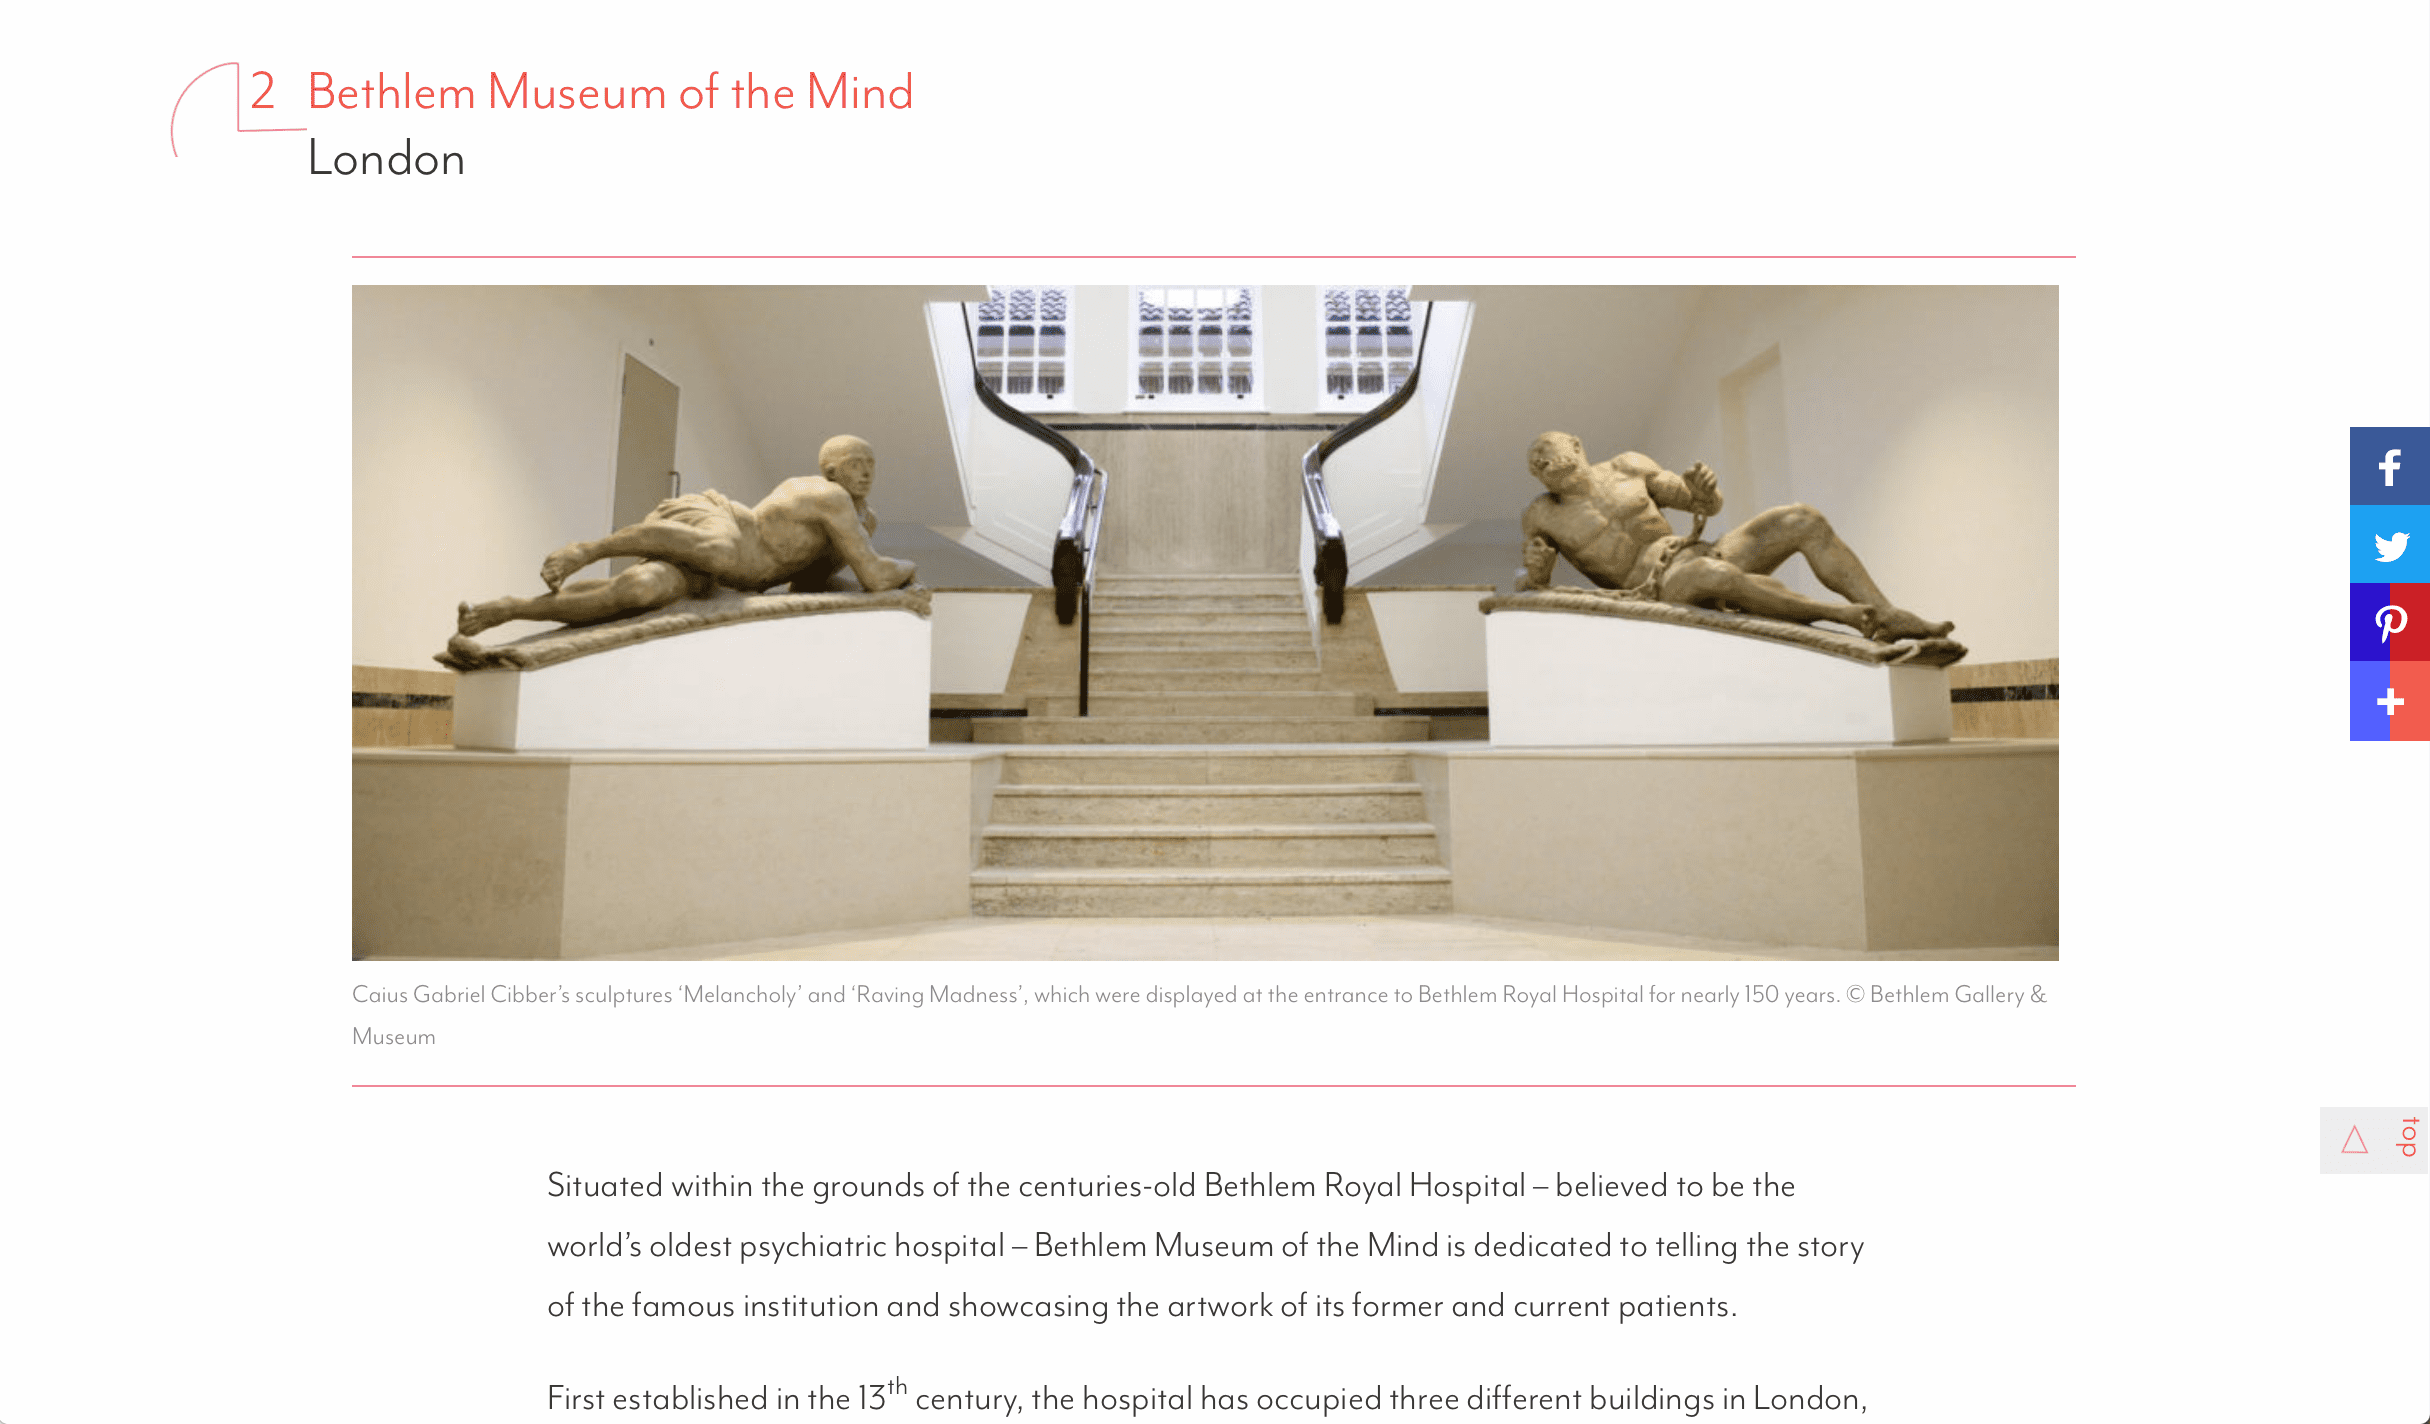 best places to visit - Bethlem Museum of the Mind